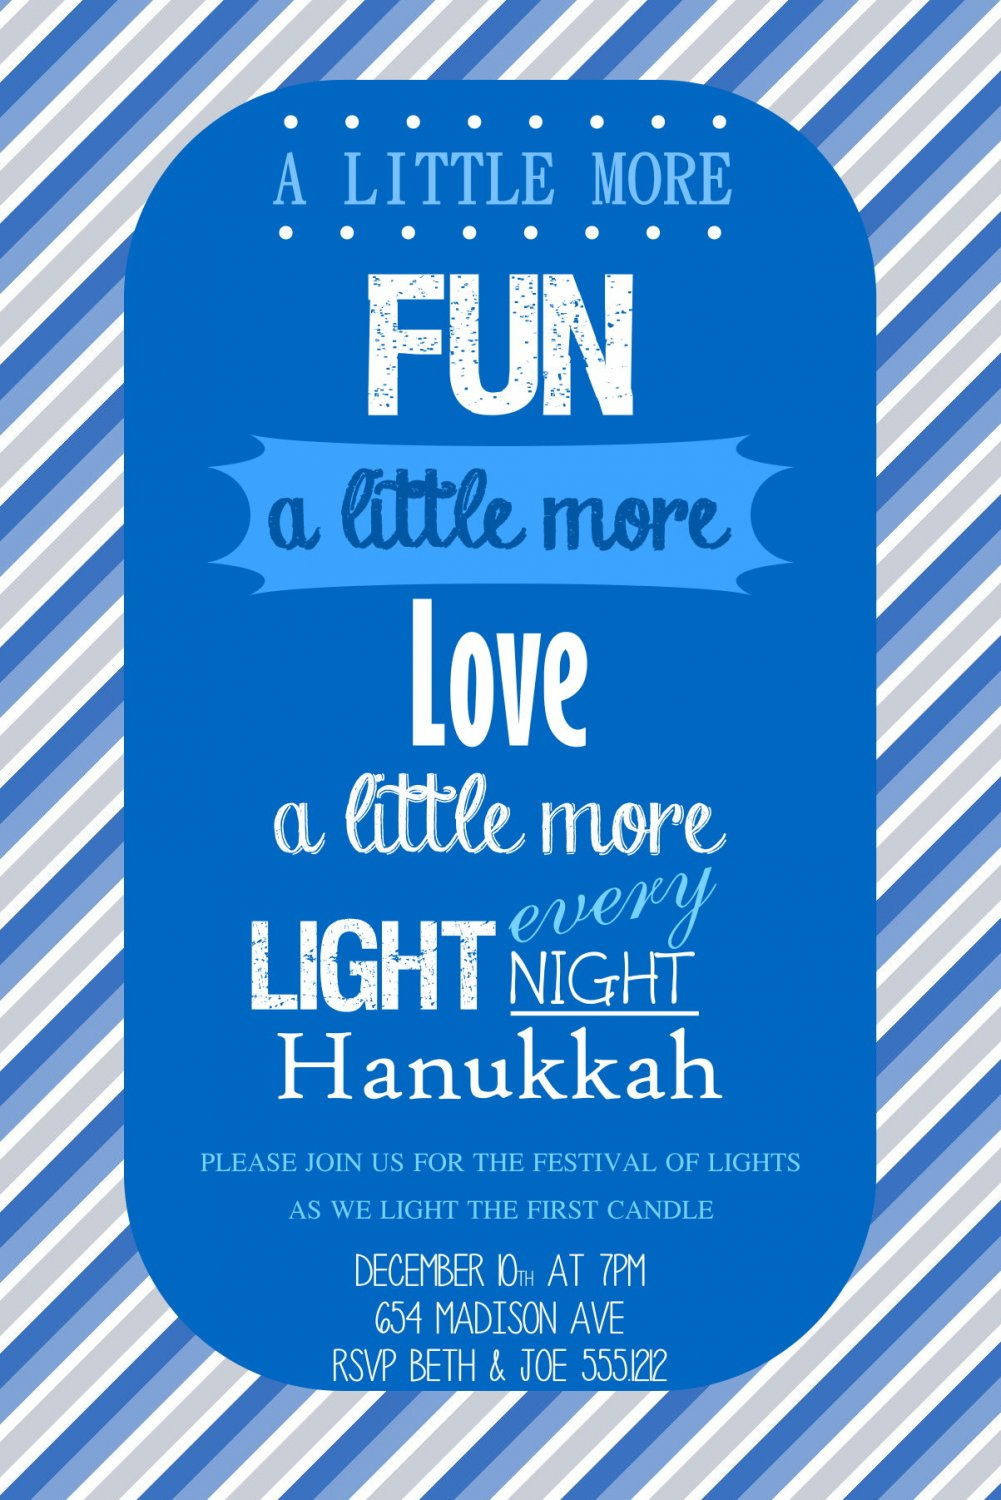 Hanukkah Invitations, Hanukkah Dinner Party, Hanukkah DYI Invites